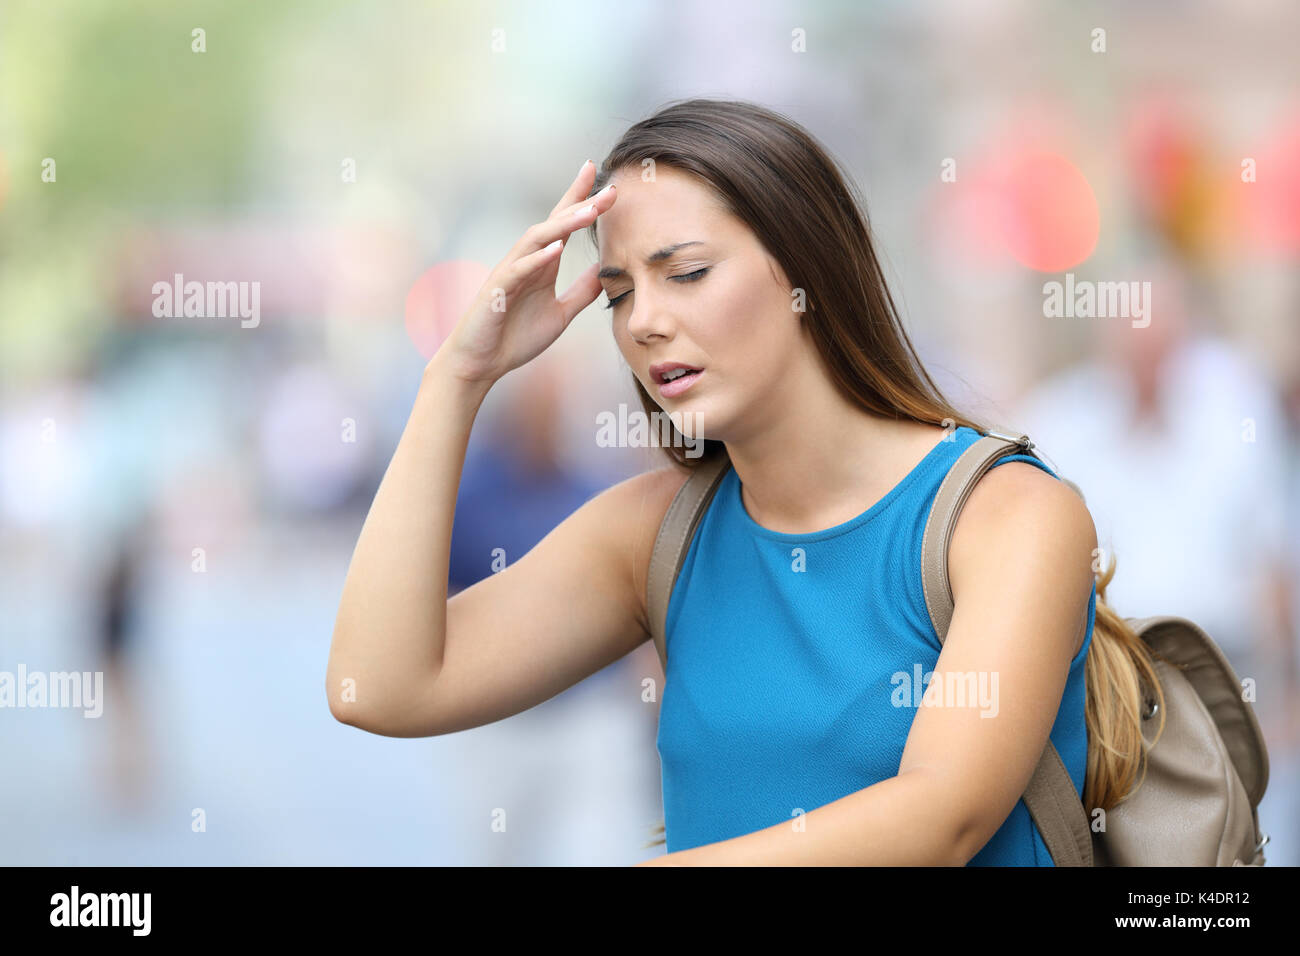 Single woman suffering headache outdoors in the street - Stock Image